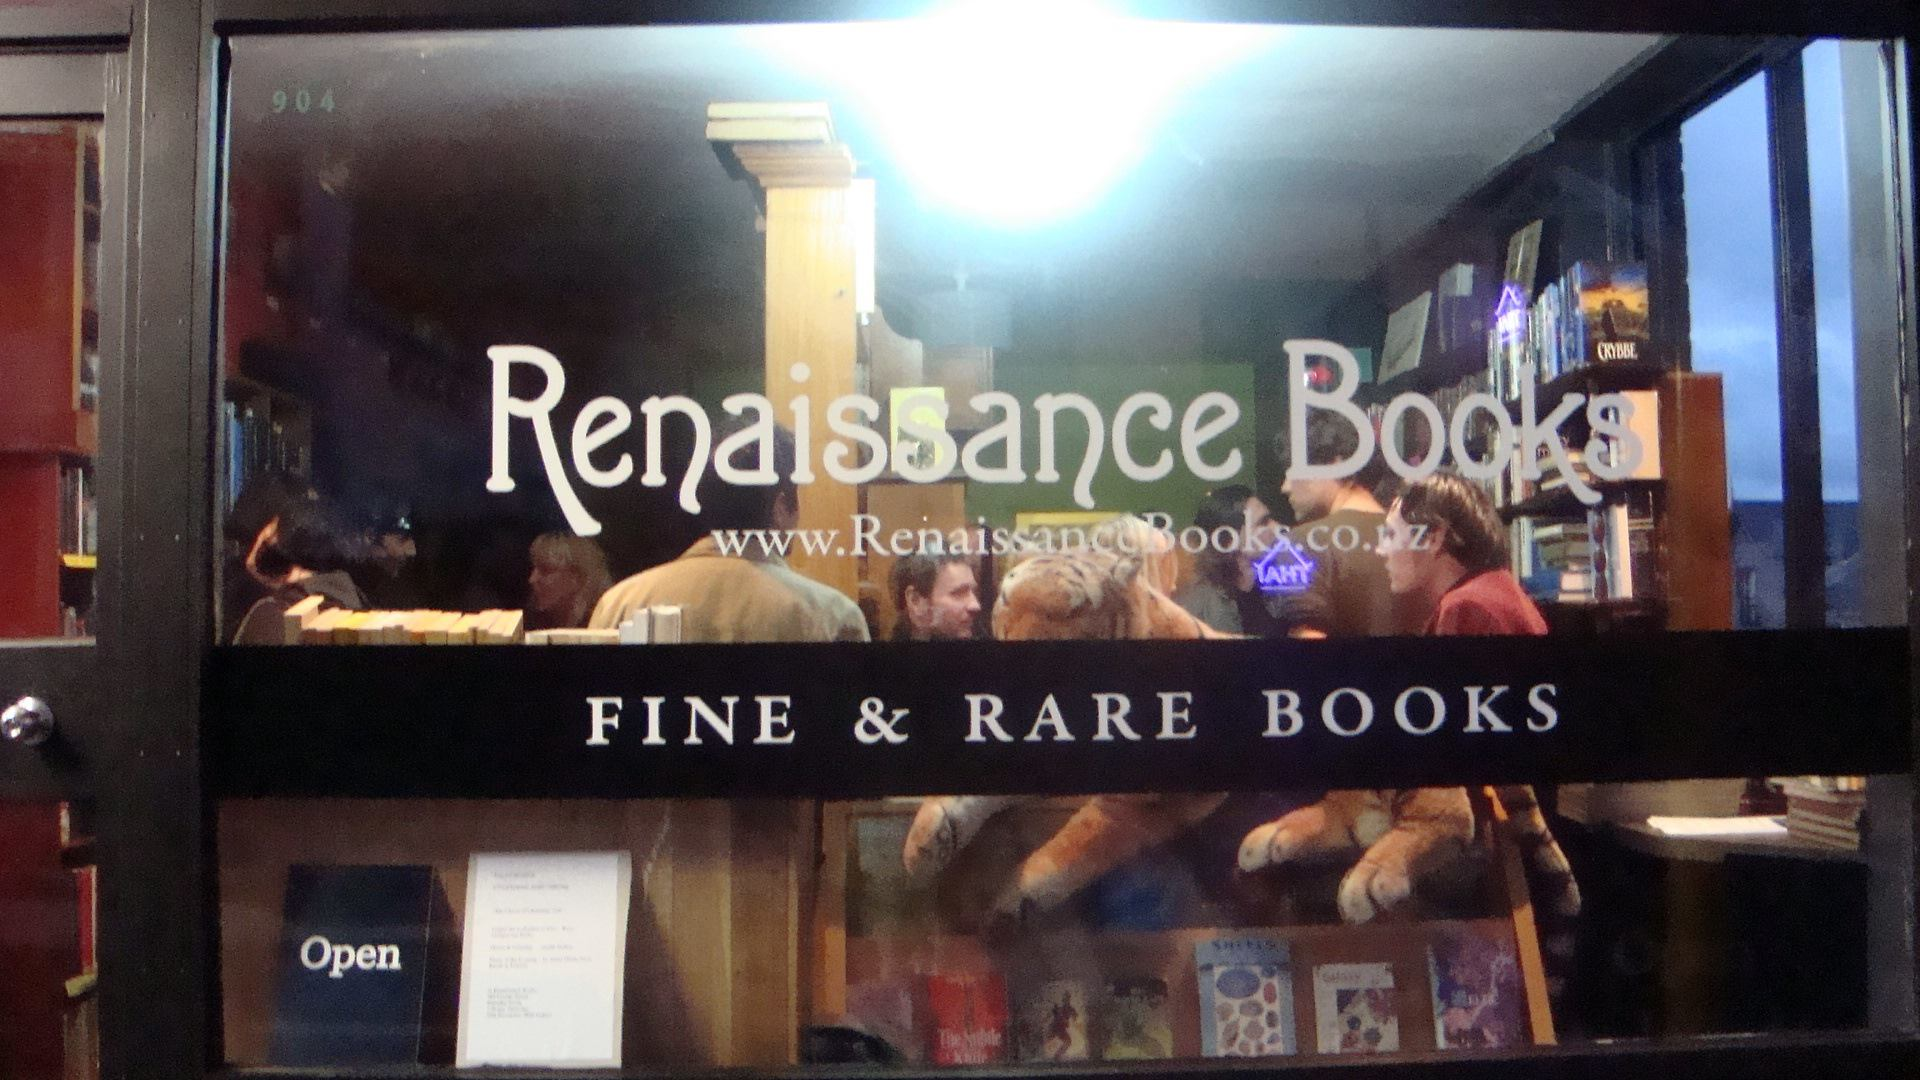 Picture of Renaissance Books' storefront